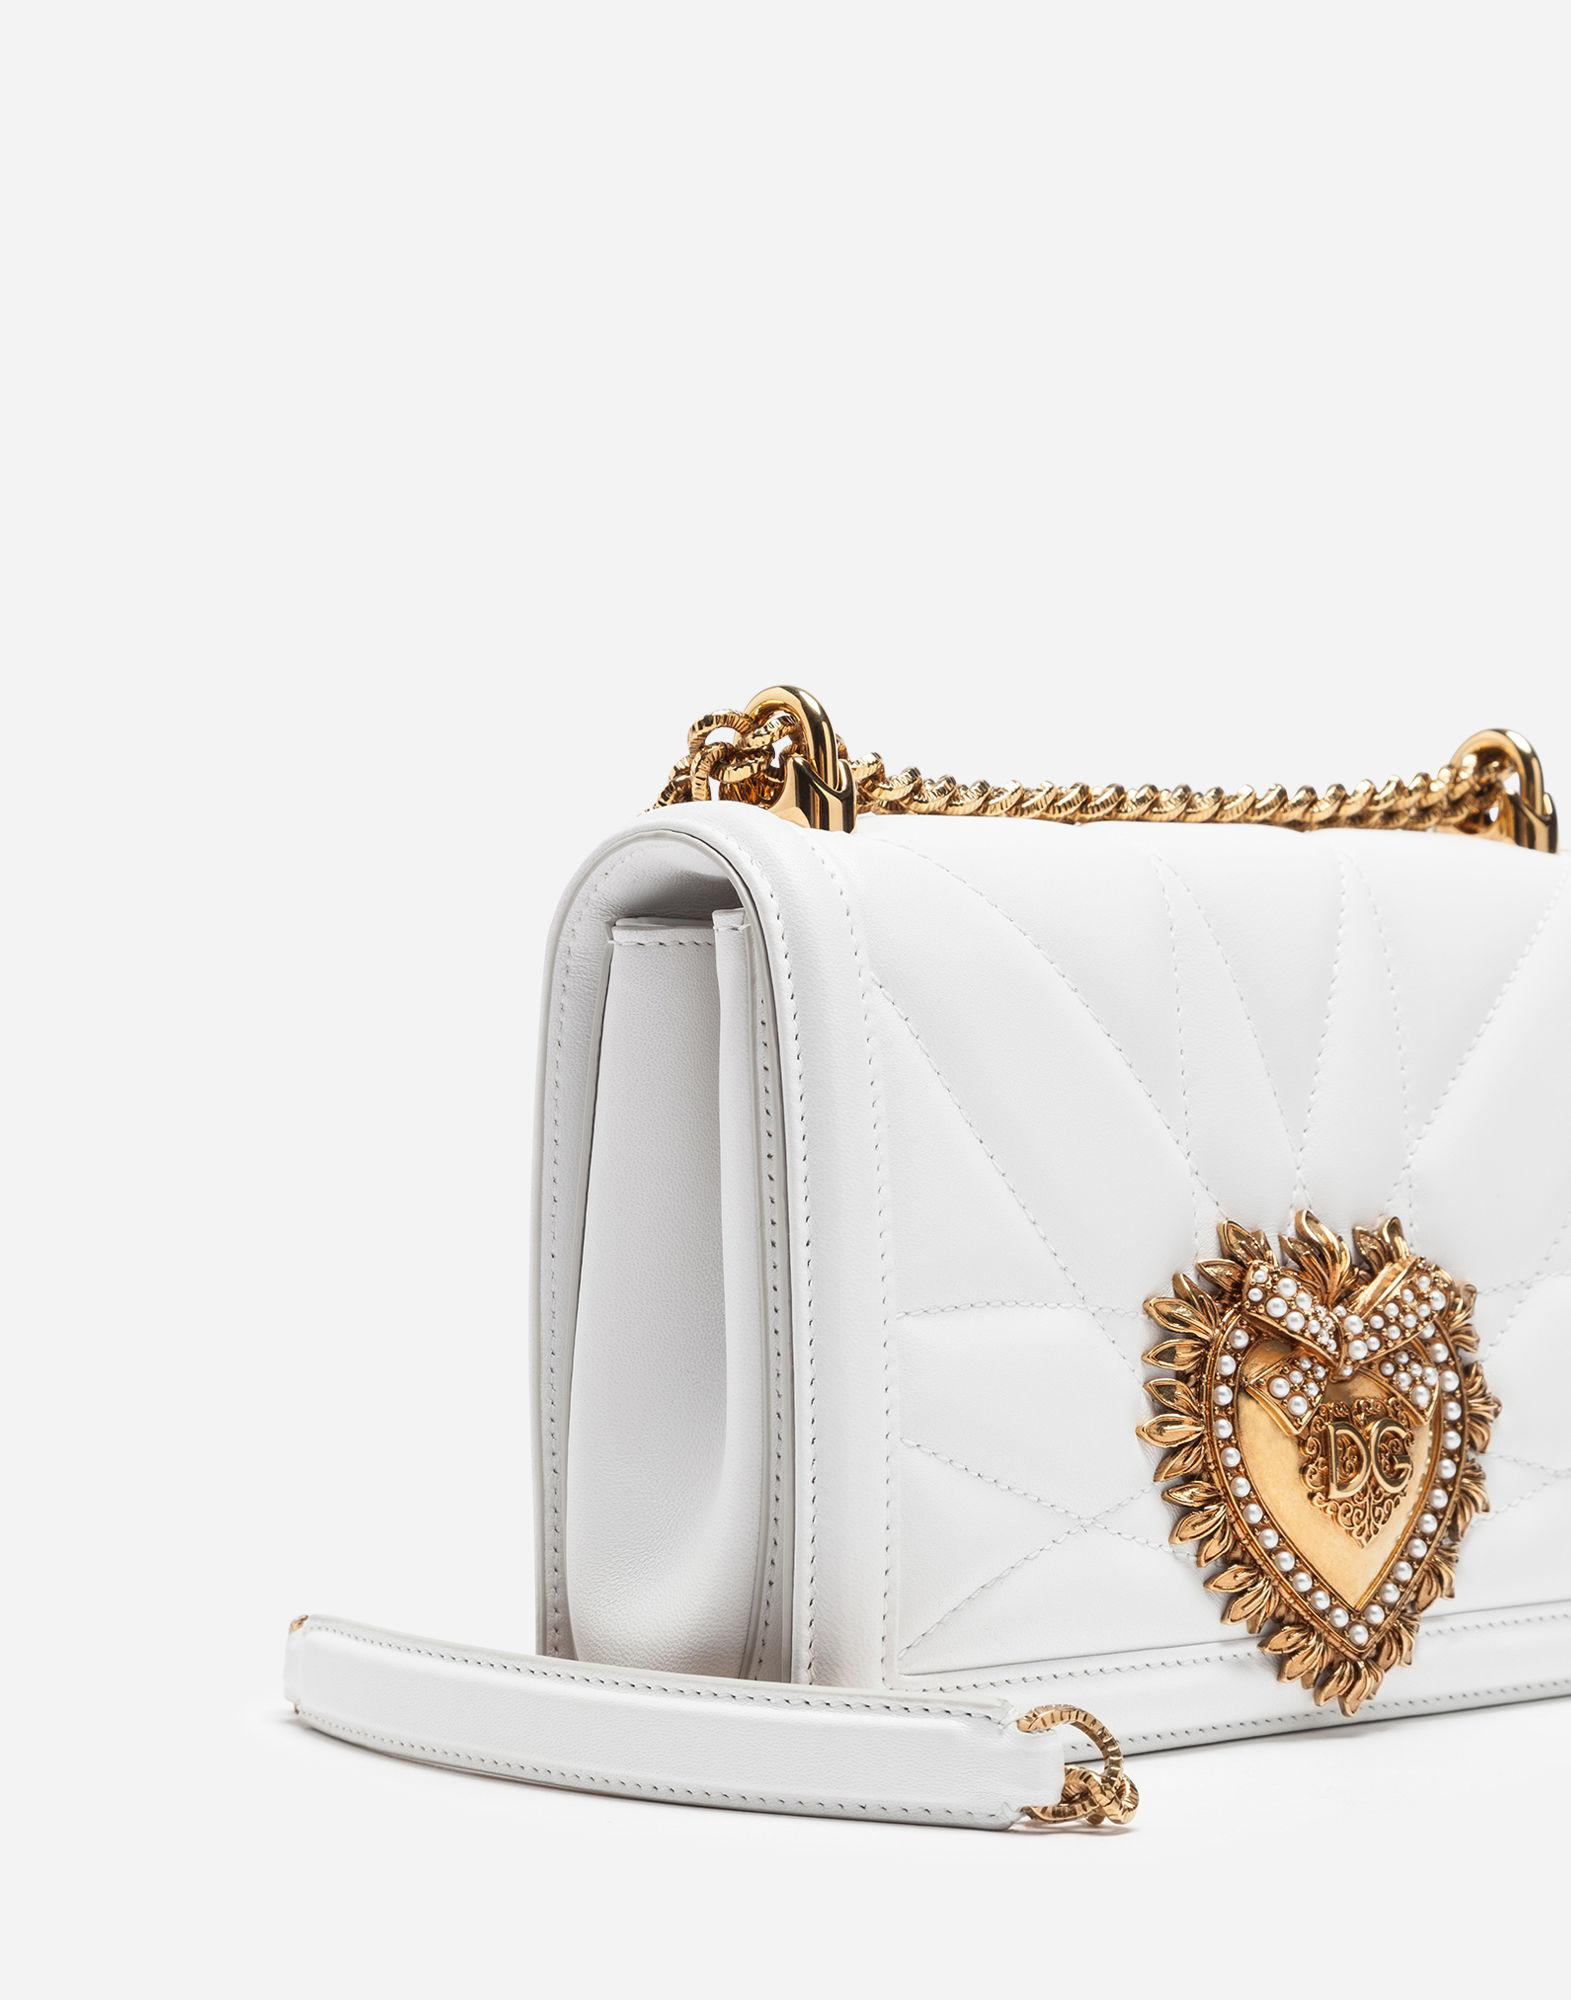 4e036f0361 Lyst - Dolce   Gabbana Medium Devotion Bag In Quilted Nappa Leather in  White - Save 20%